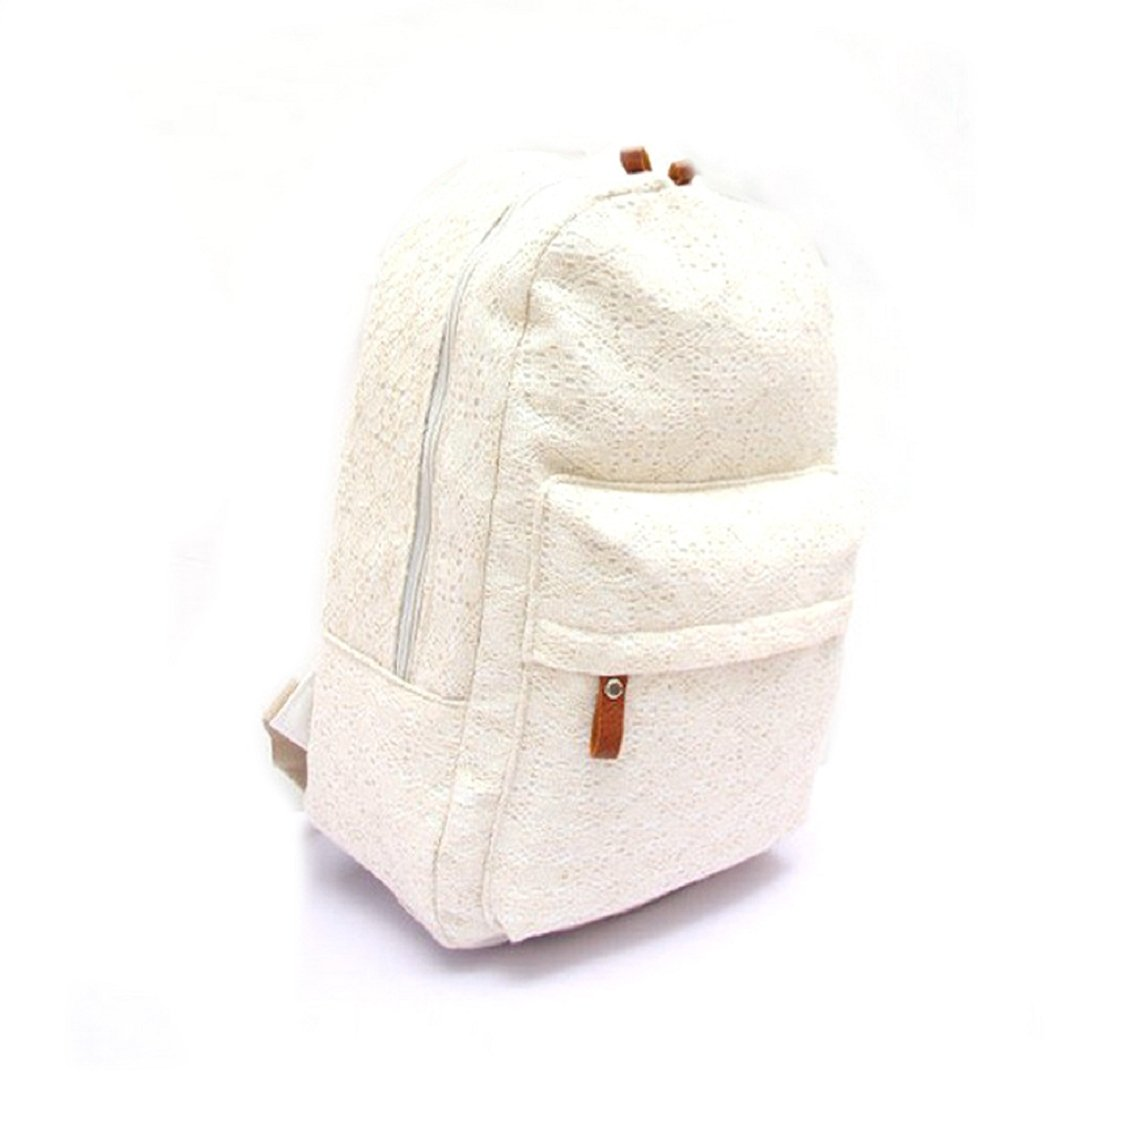 Willtoo(TM) Fashion Girls Cute Lace Canvas Backpack Sports Bag New Schoolbag (White)